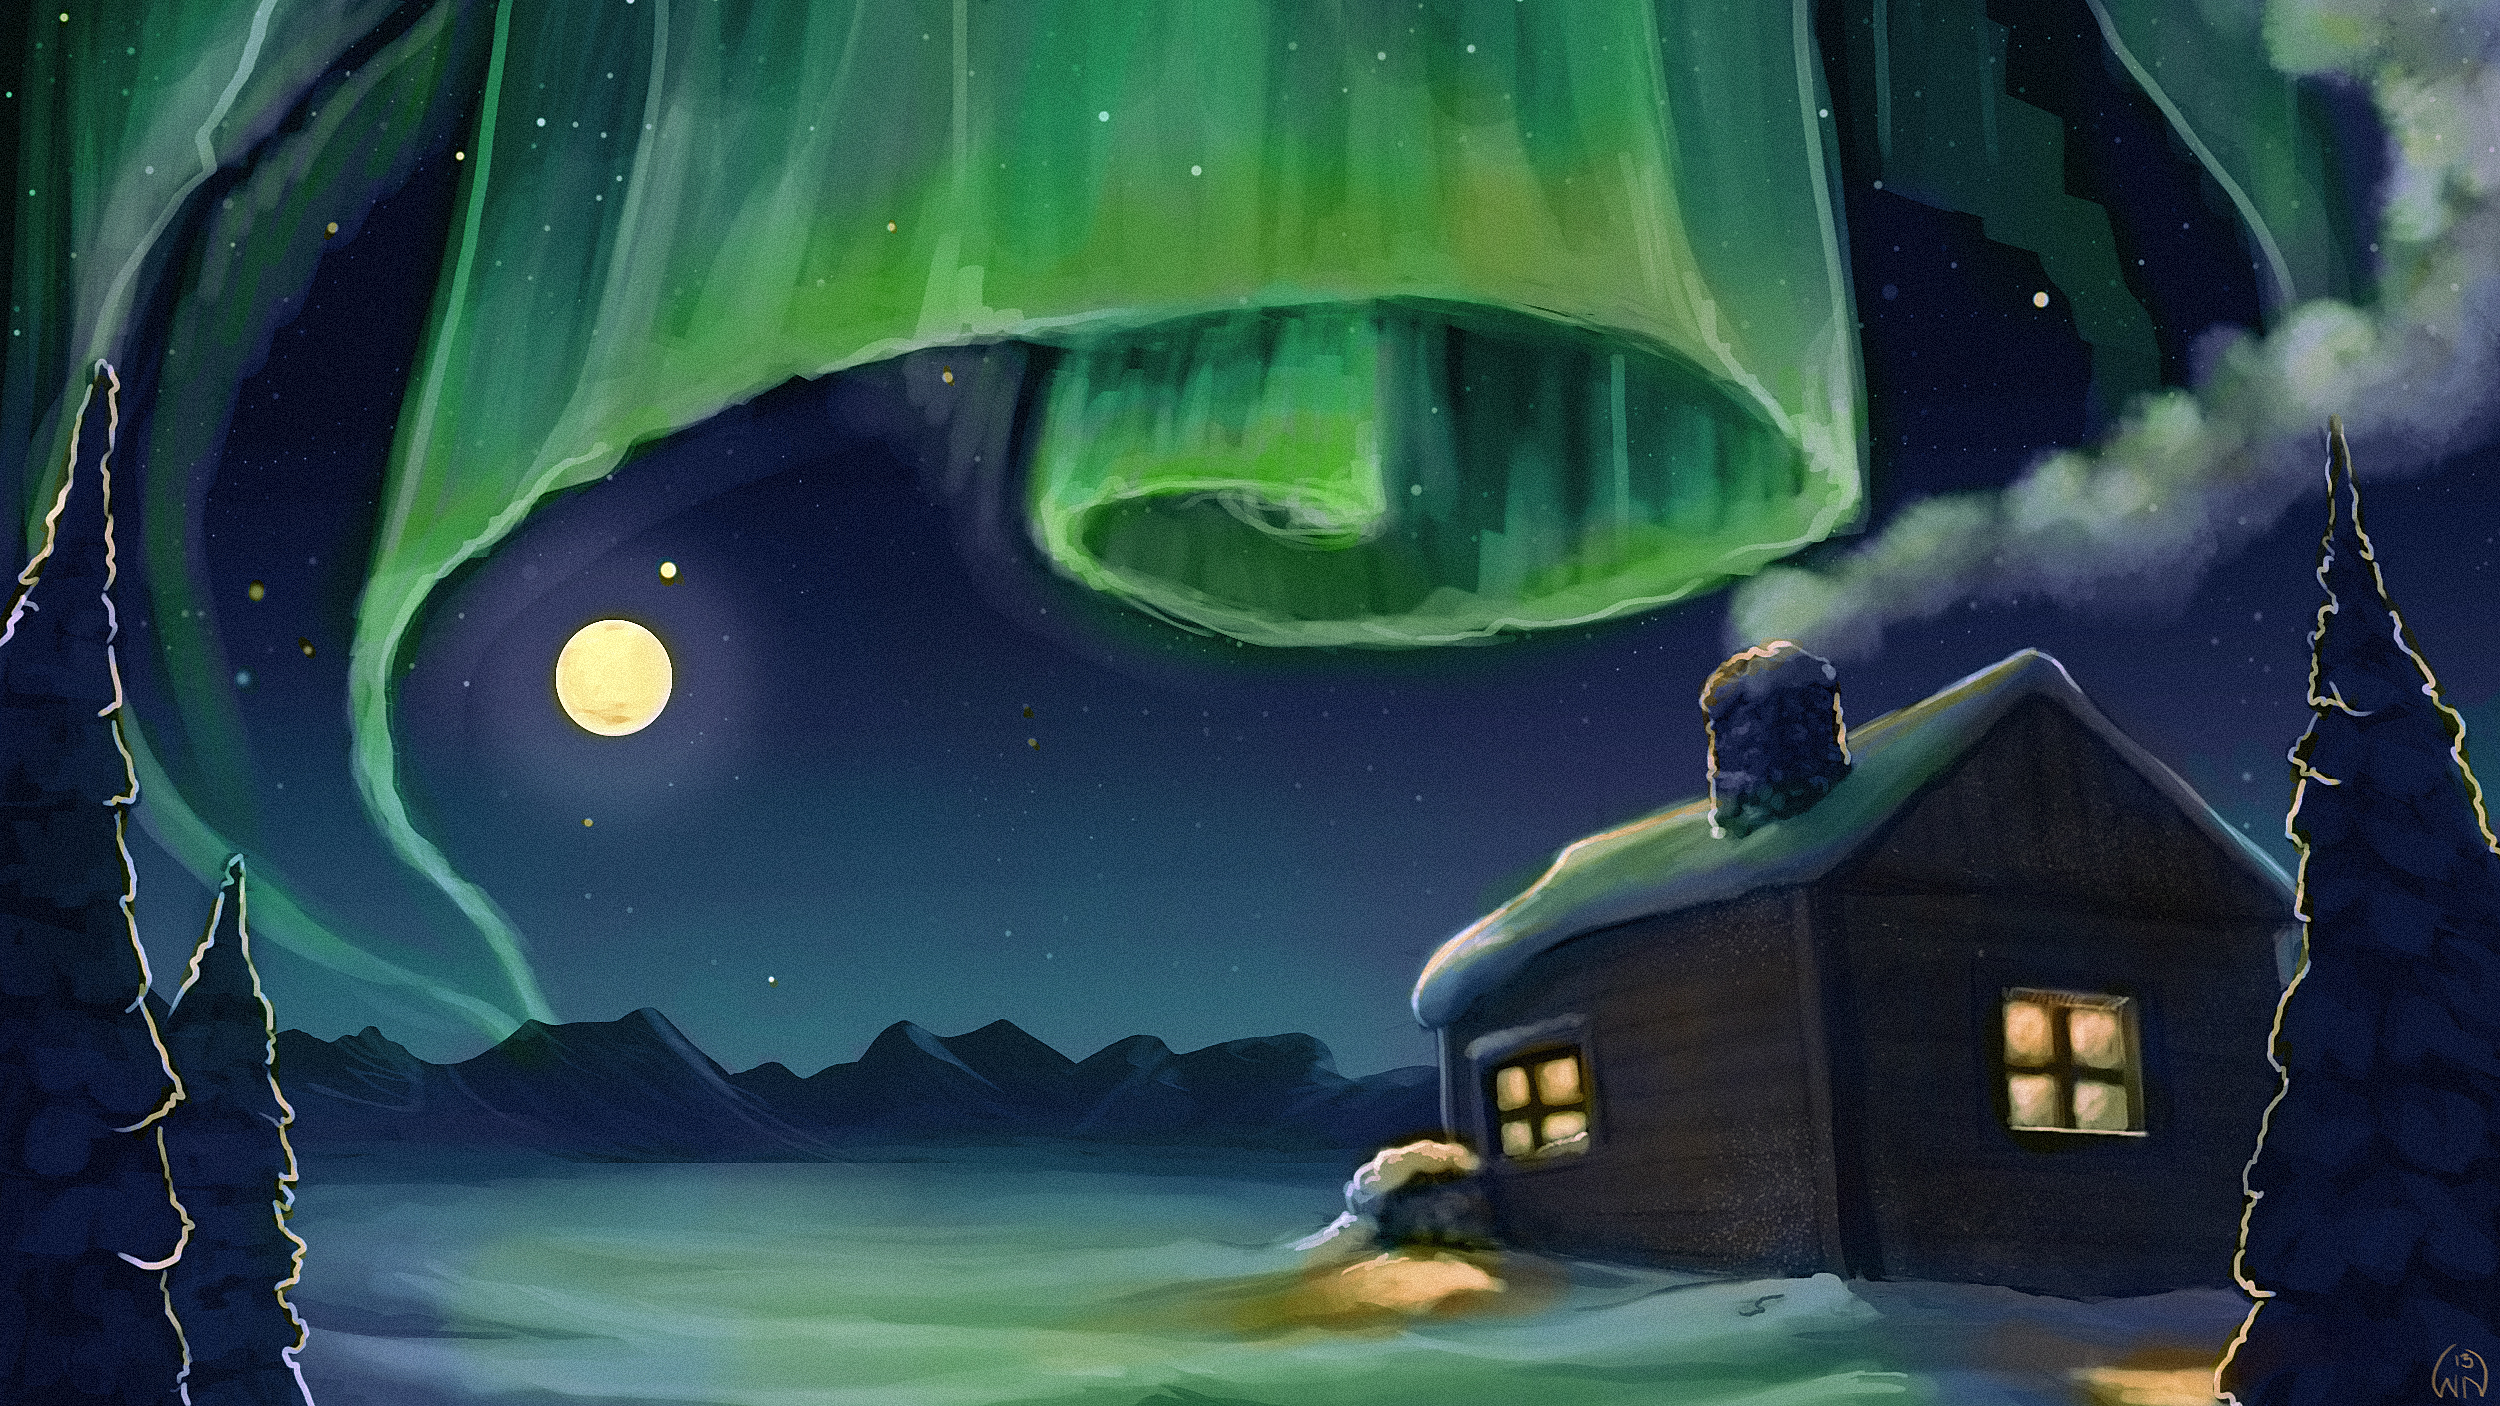 2500x1406 The Cabin Under The Northern Lights Wictorian Art